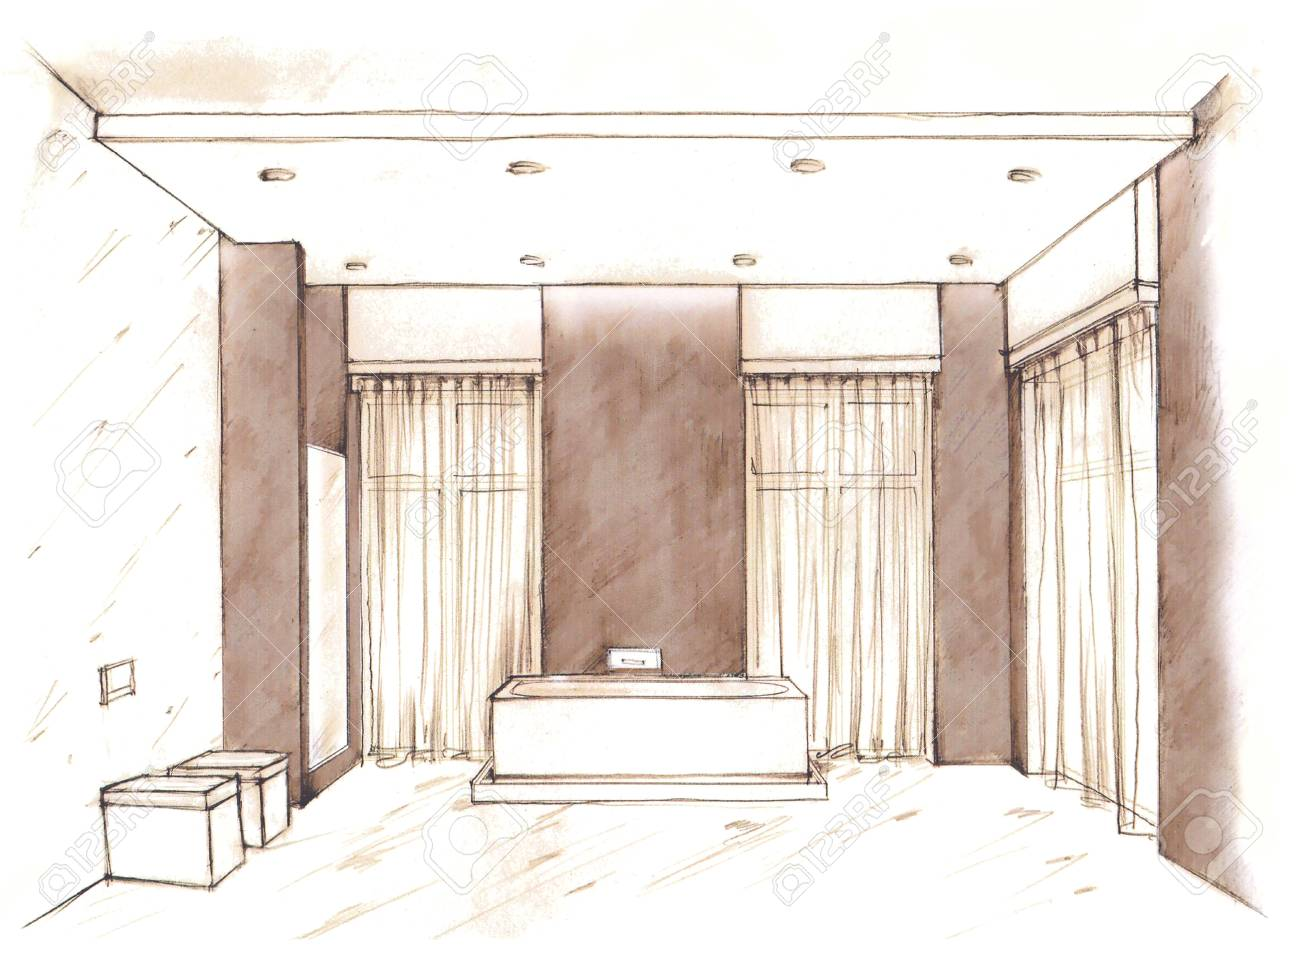 Hand Drawn Sketch Of A Modern Bathroom Interior On White Background Stock Photo